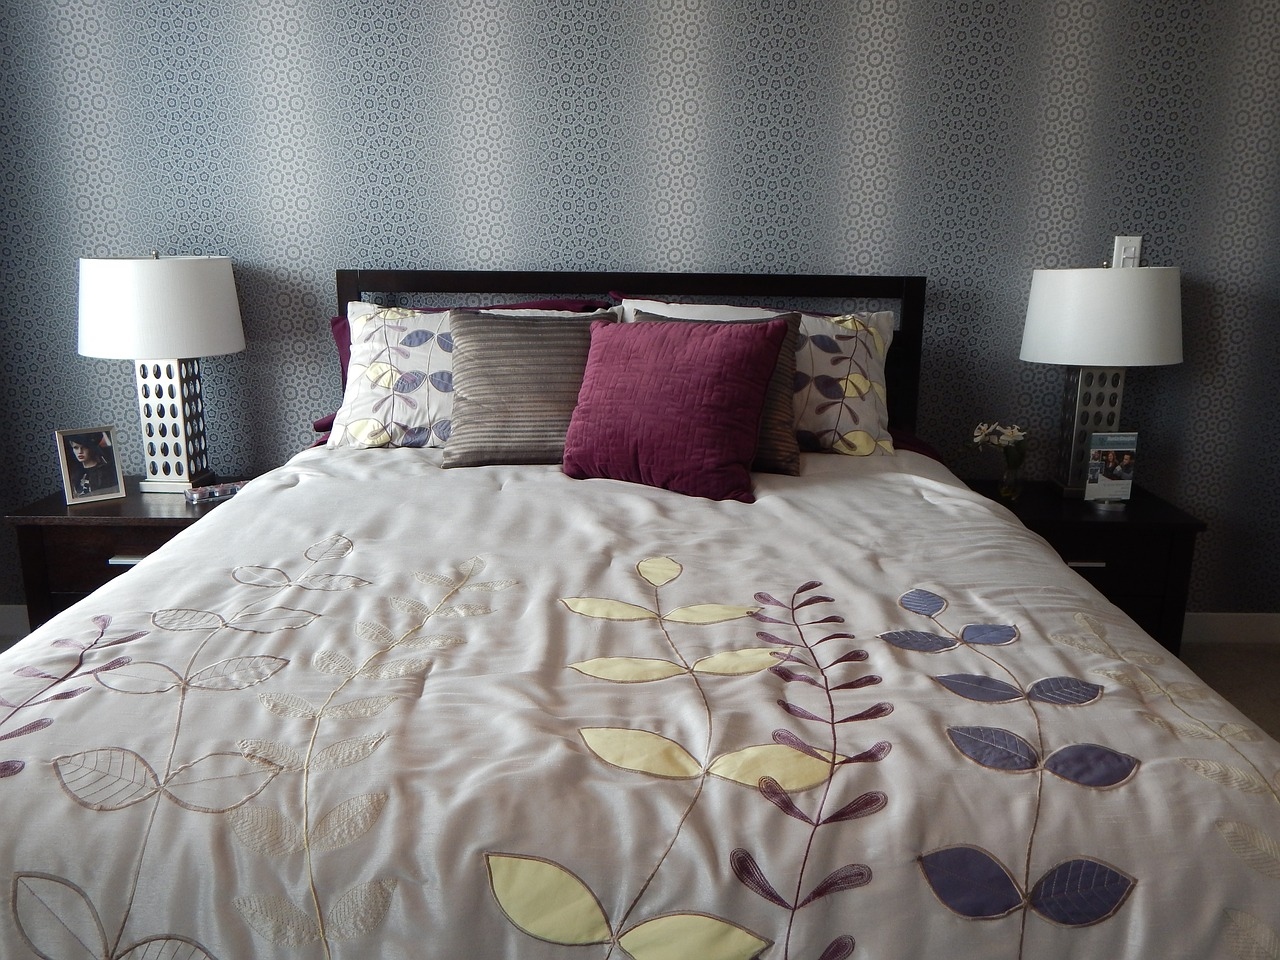 How To Pick The Right Sheets For Your Bed